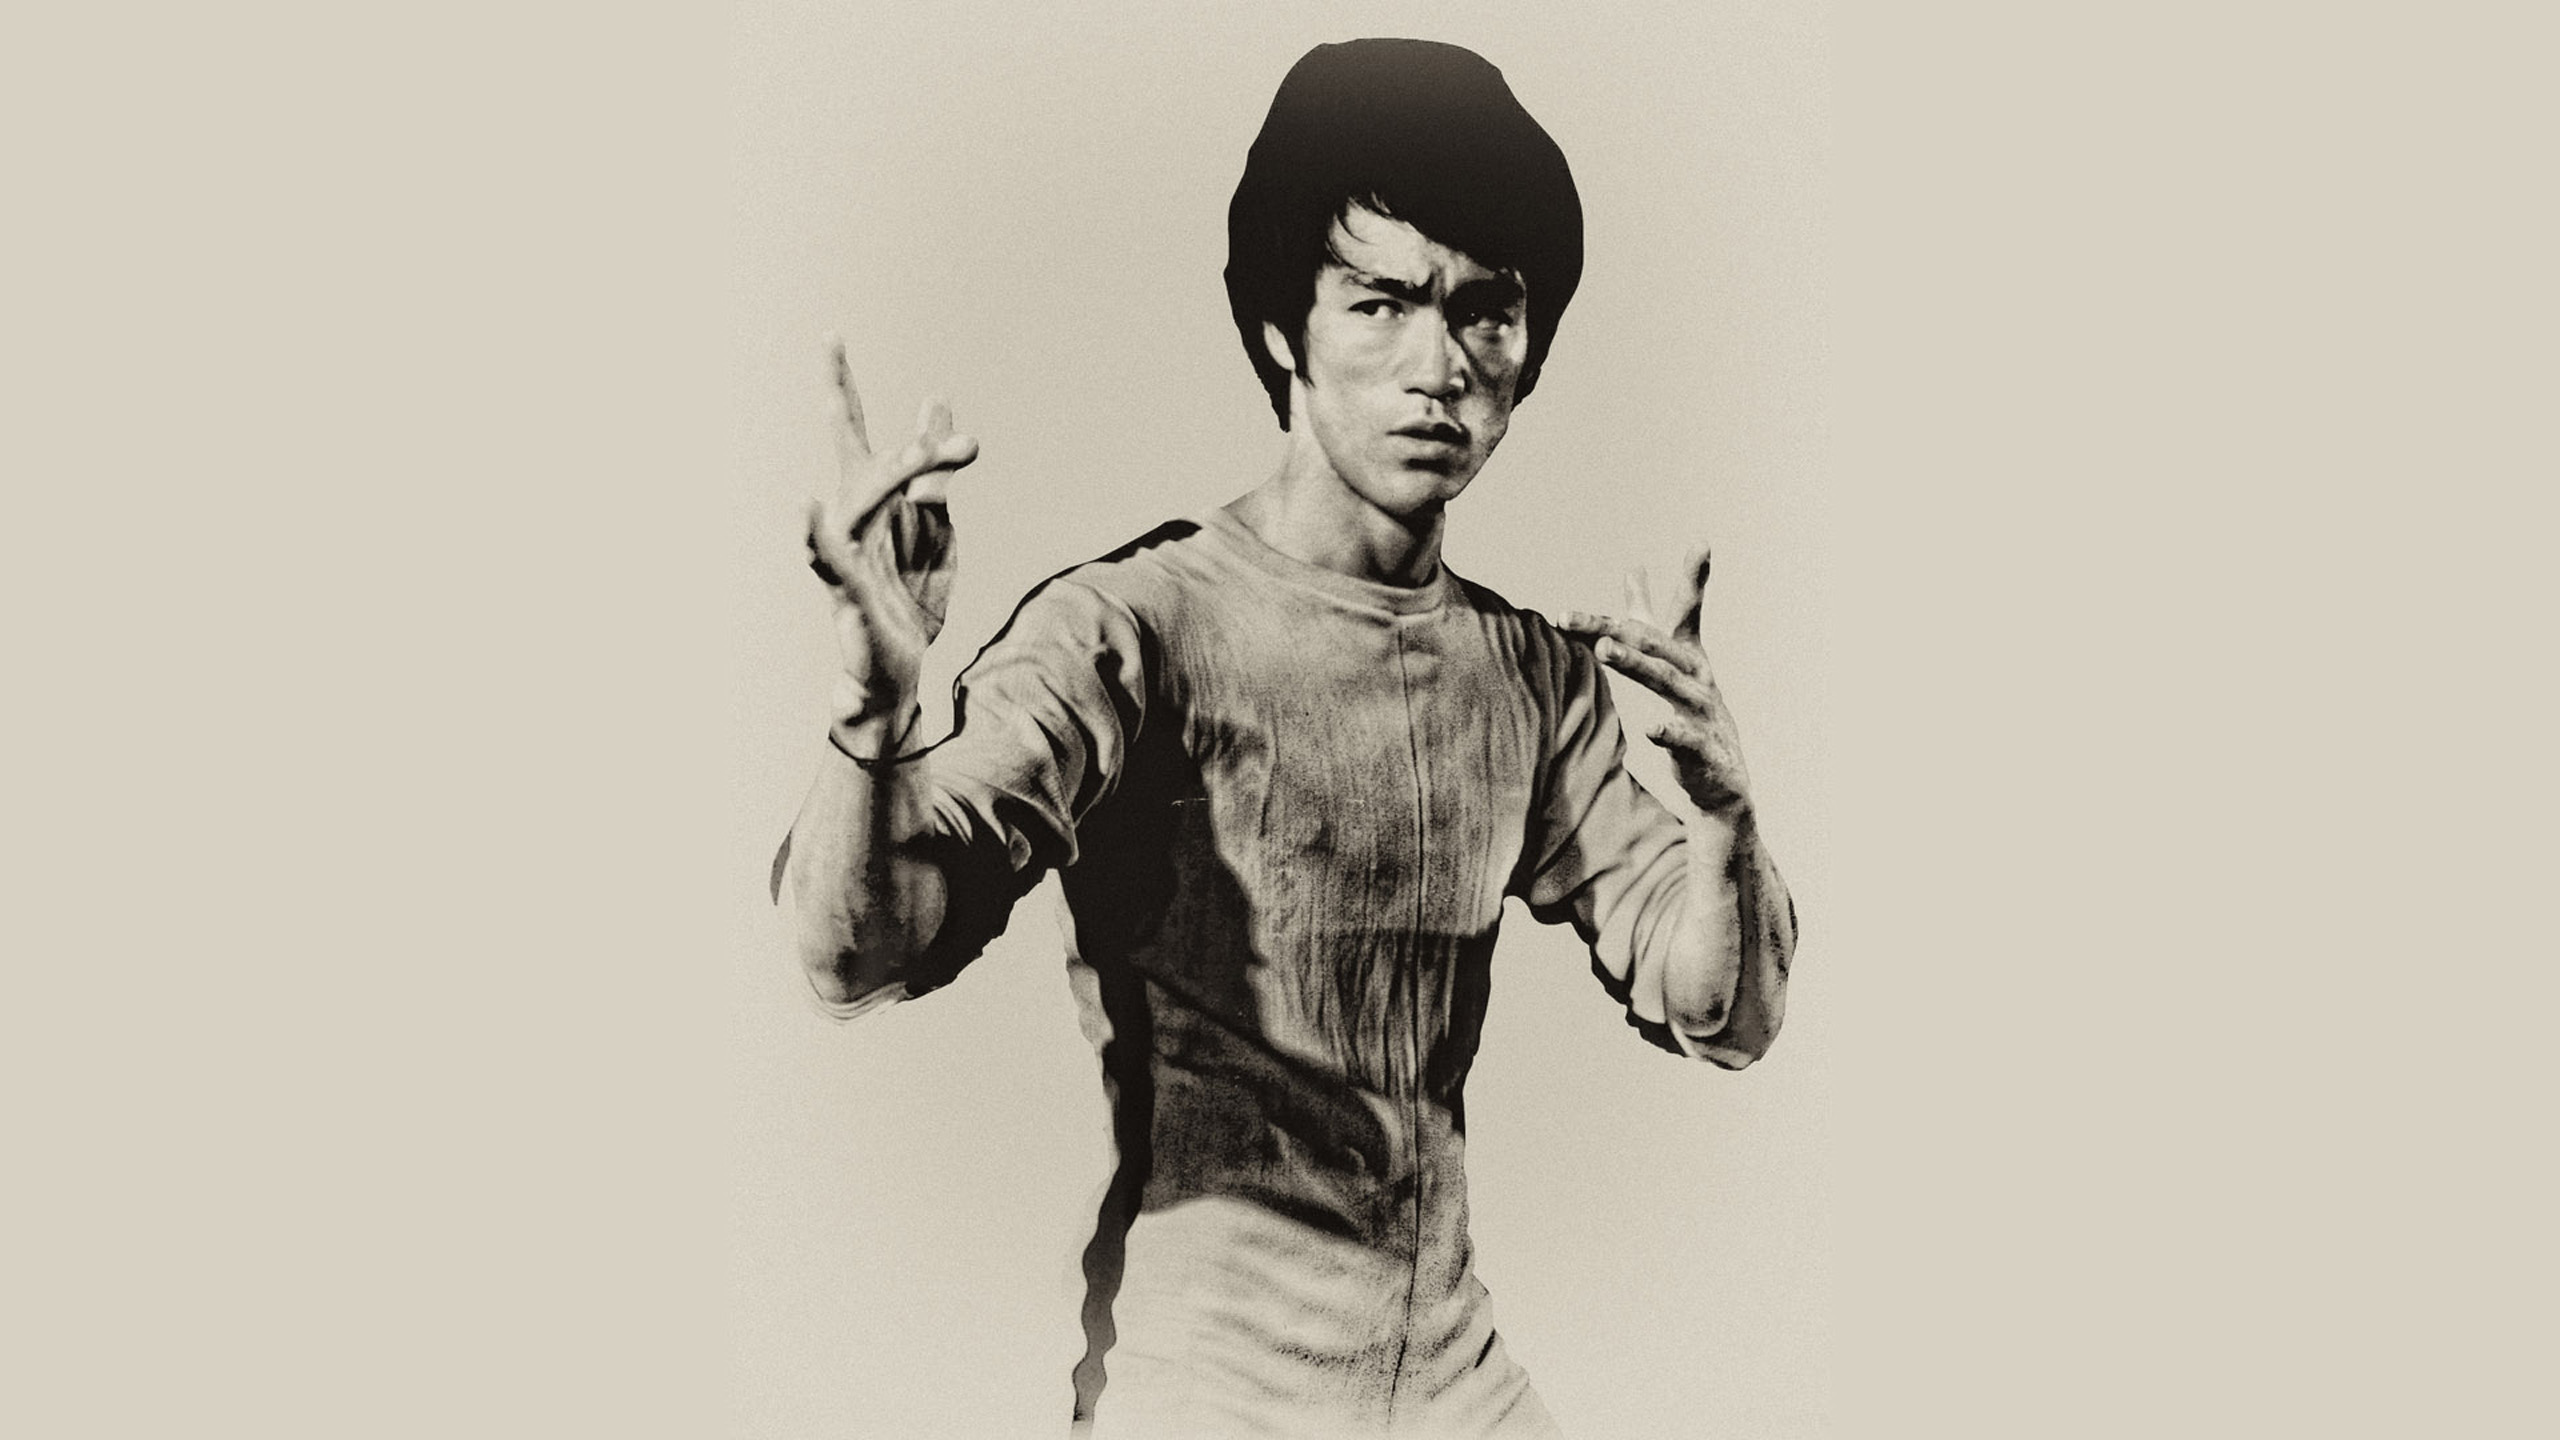 Cute Animated Wallpapers For Mobile Bruce Lee Wallpapers Hd Pixelstalk Net